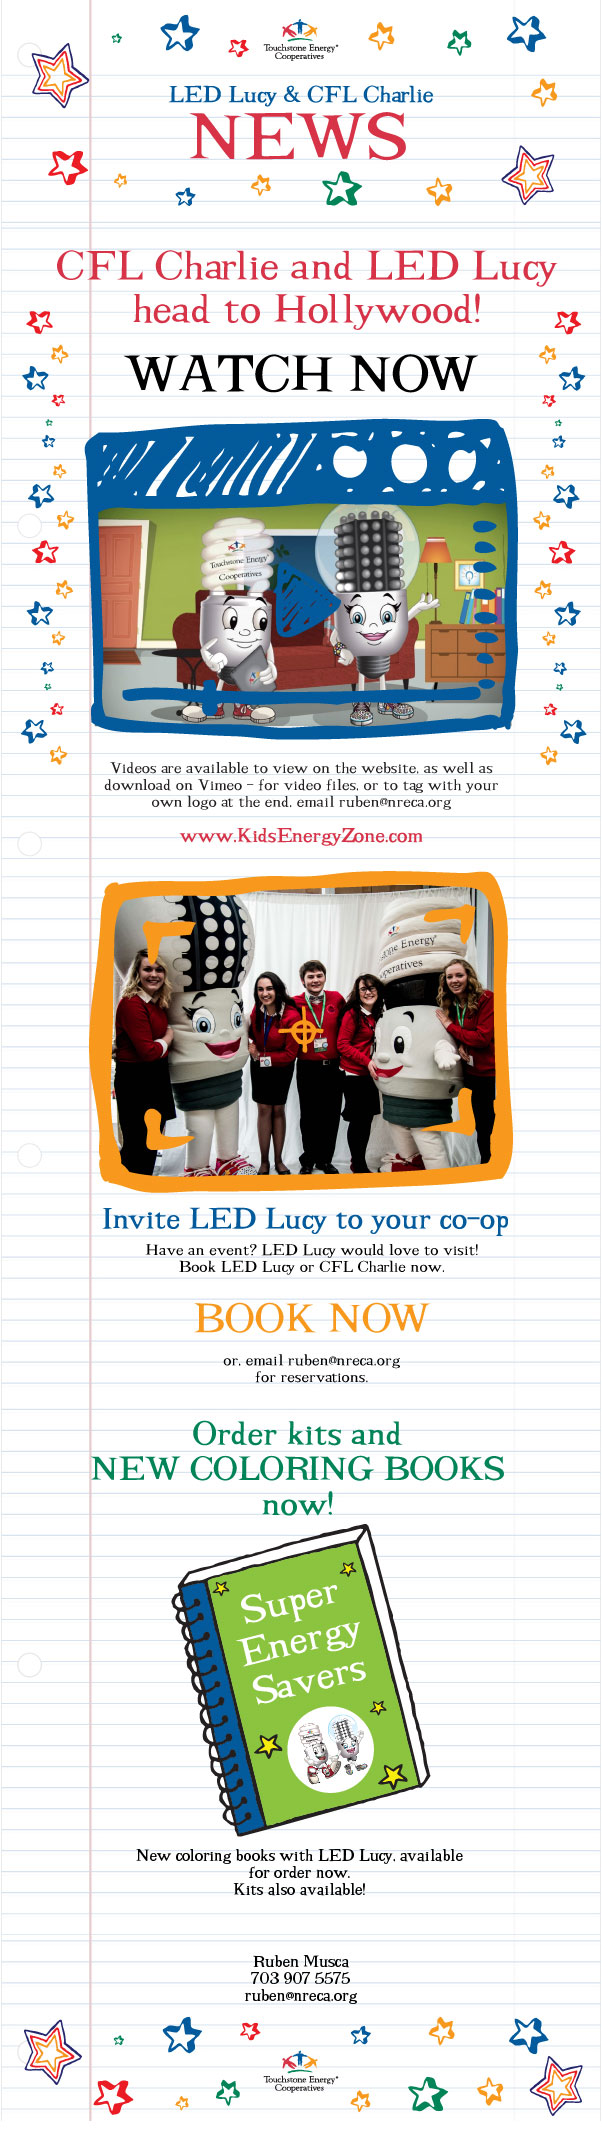 LED-Lucy-And-CFL-Charlie